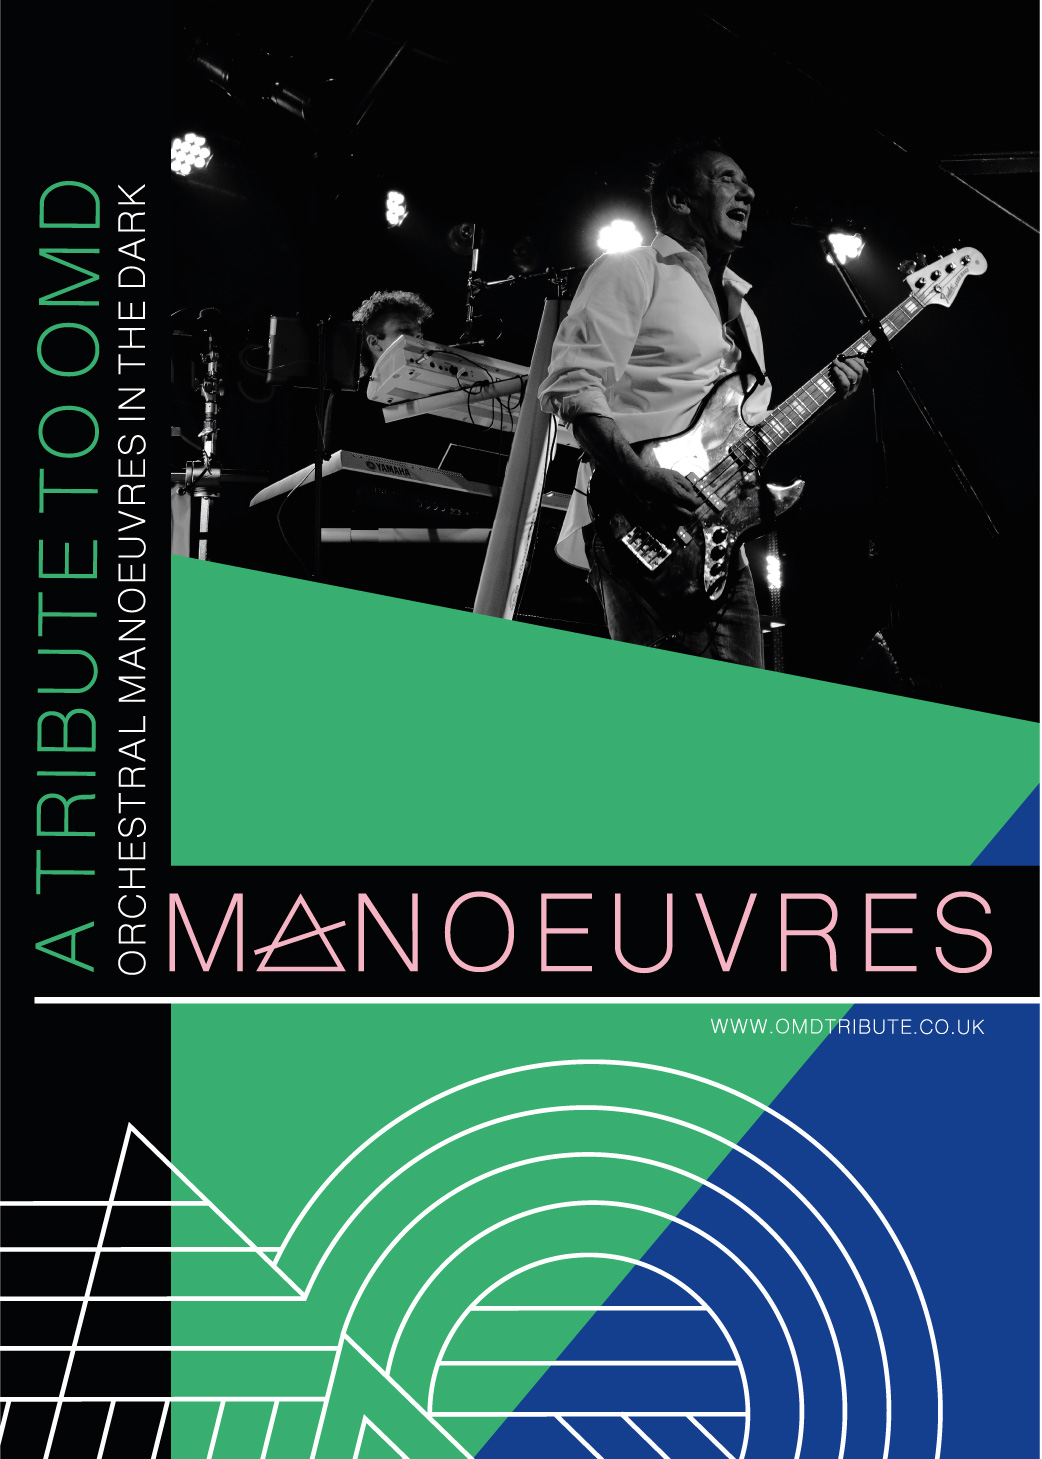 Manoeuvres - Tribute to OMD